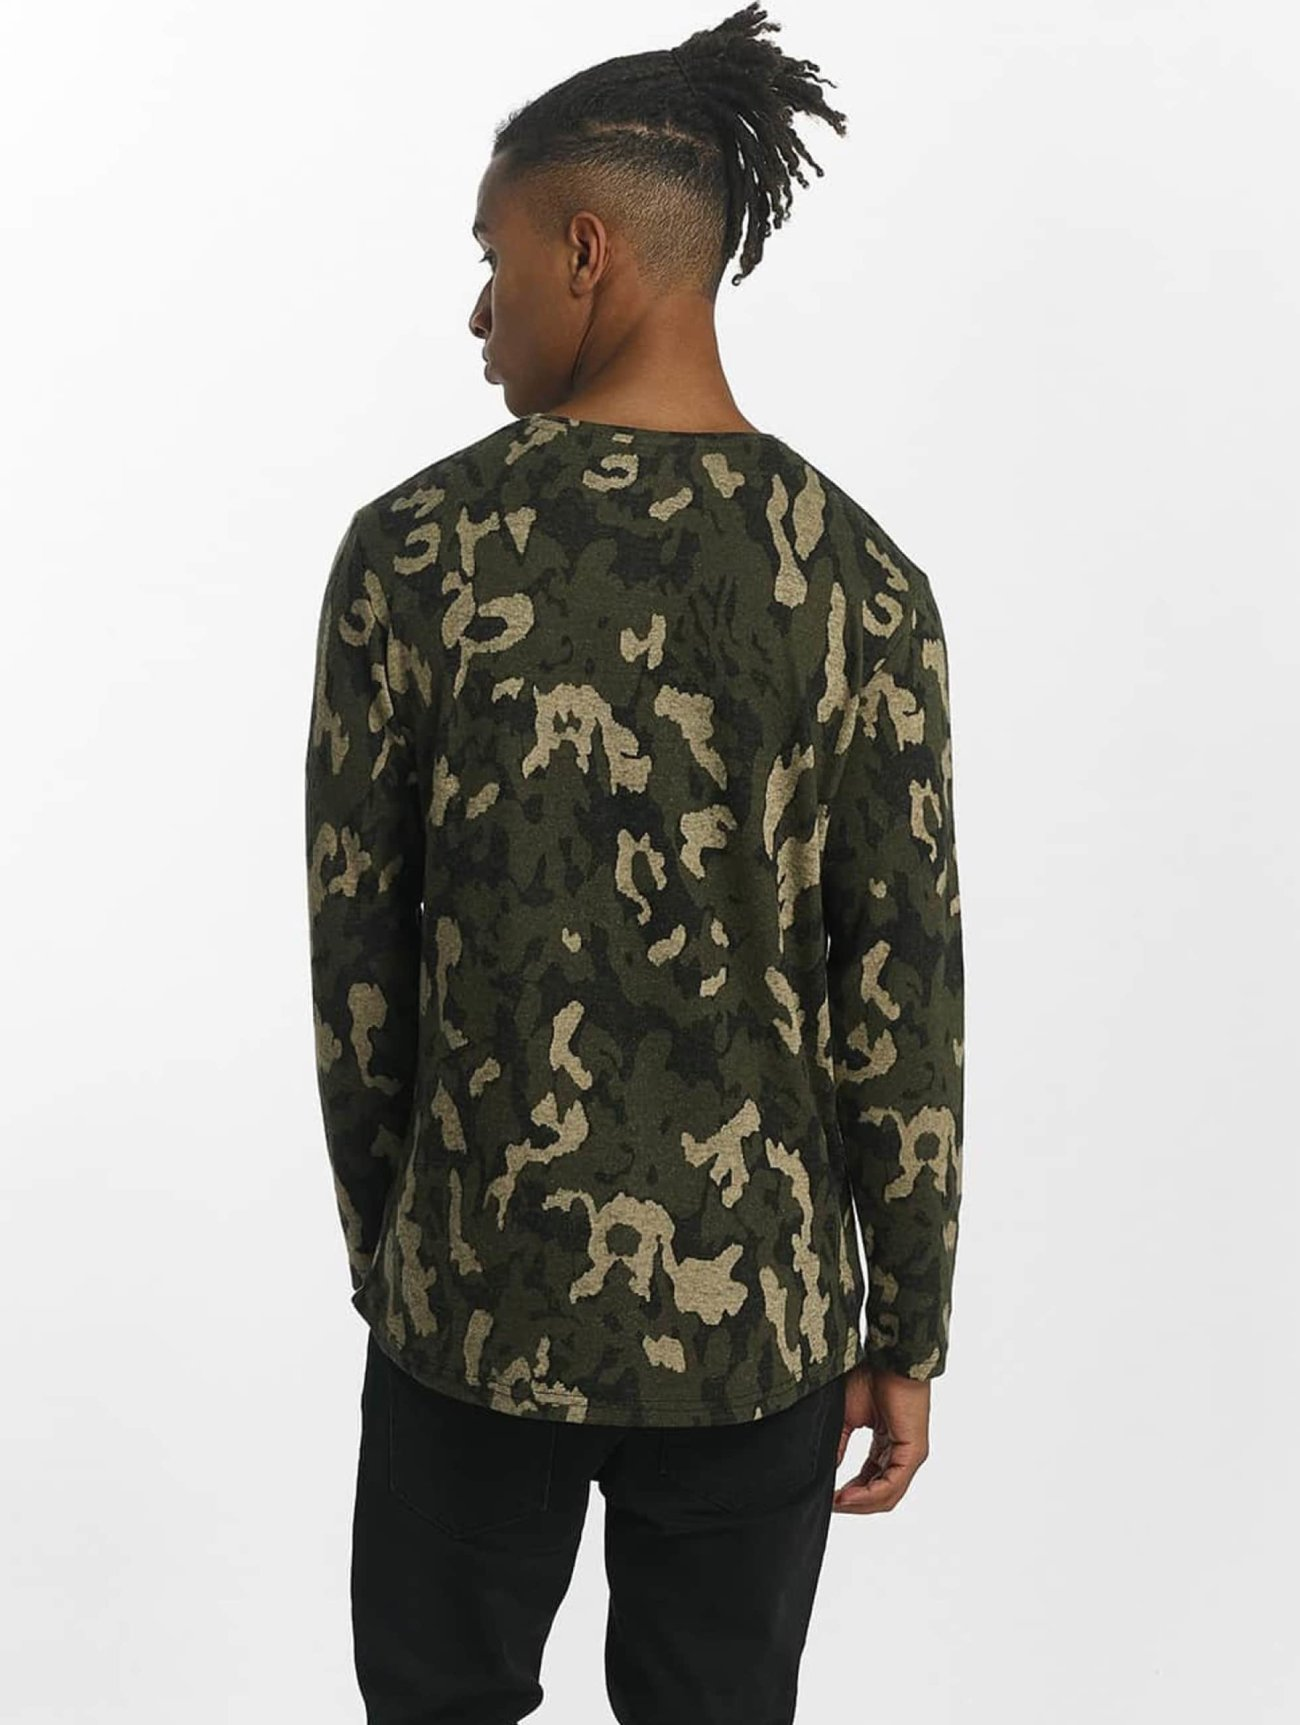 Bangastic | Camou Bang camouflage Homme Sweat & Pull 414098| Homme Hauts